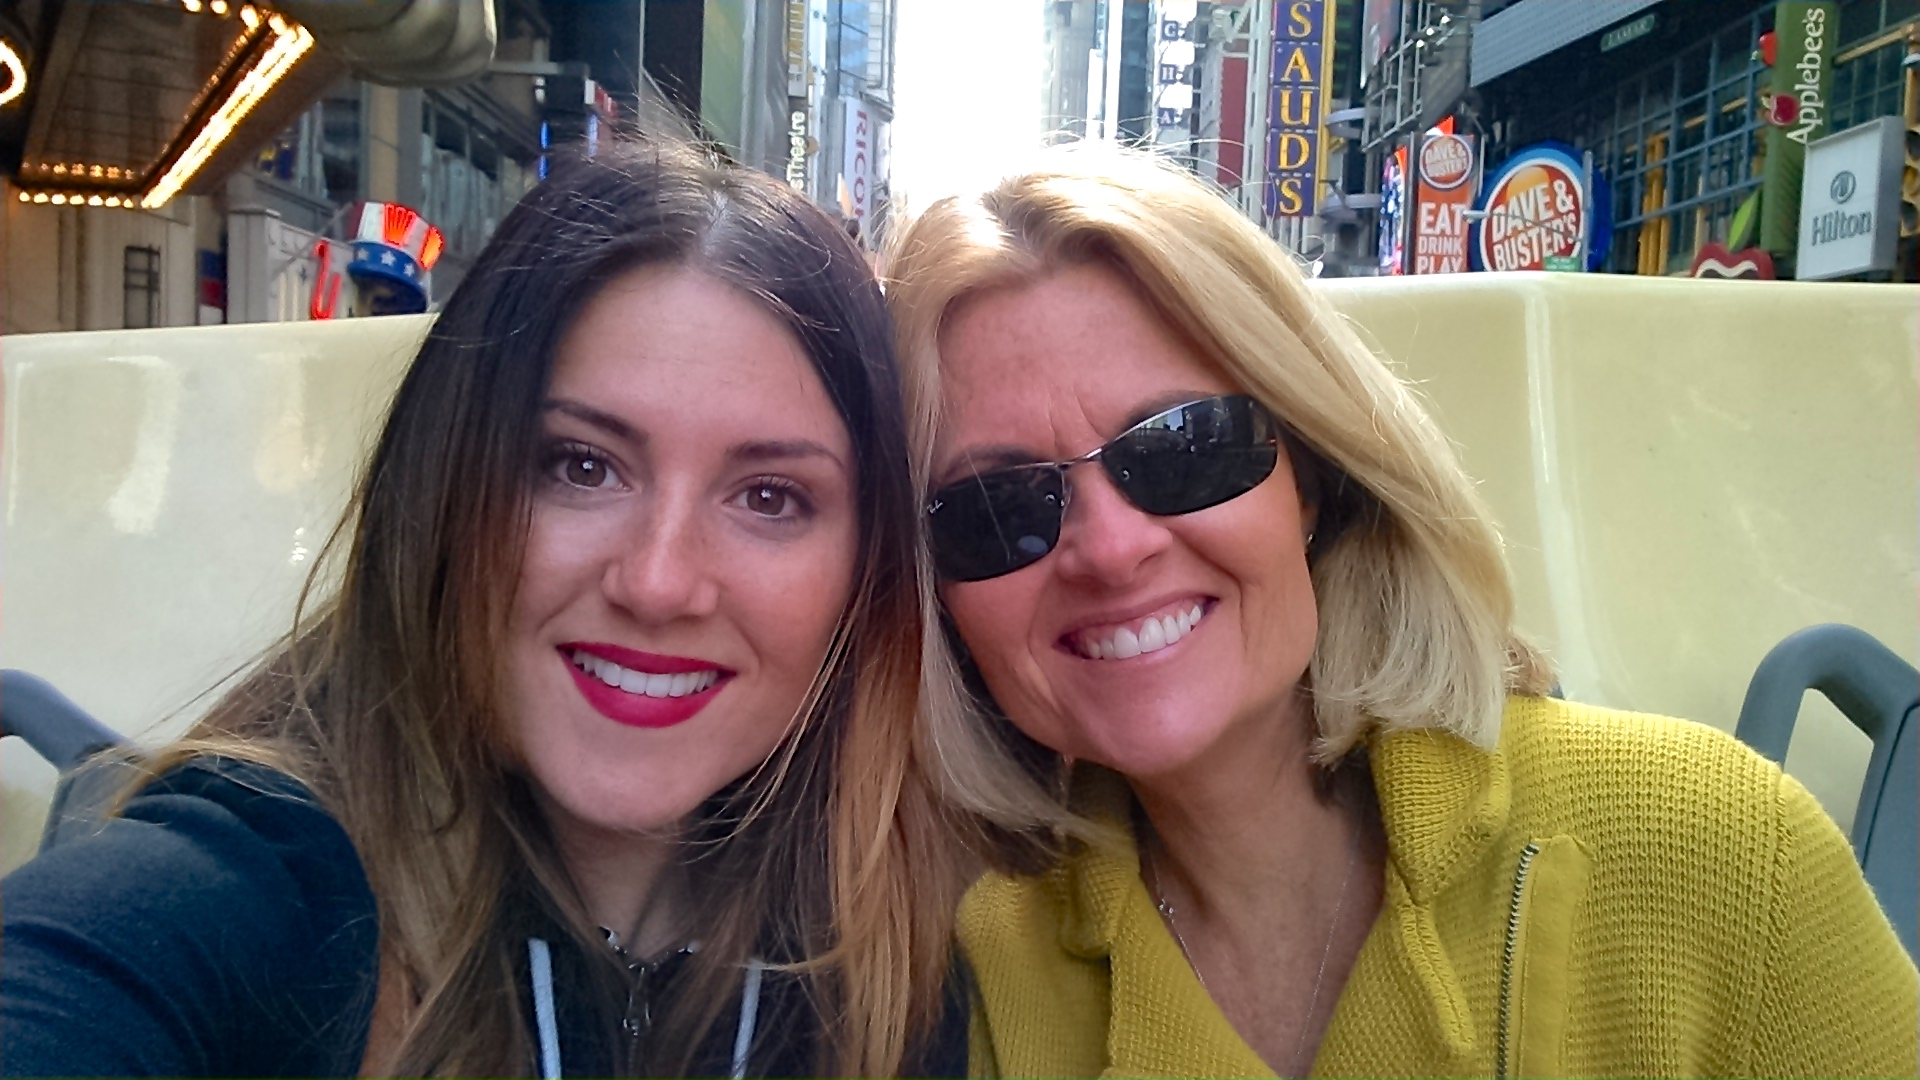 mother-daughter vacation NYC - April 2015